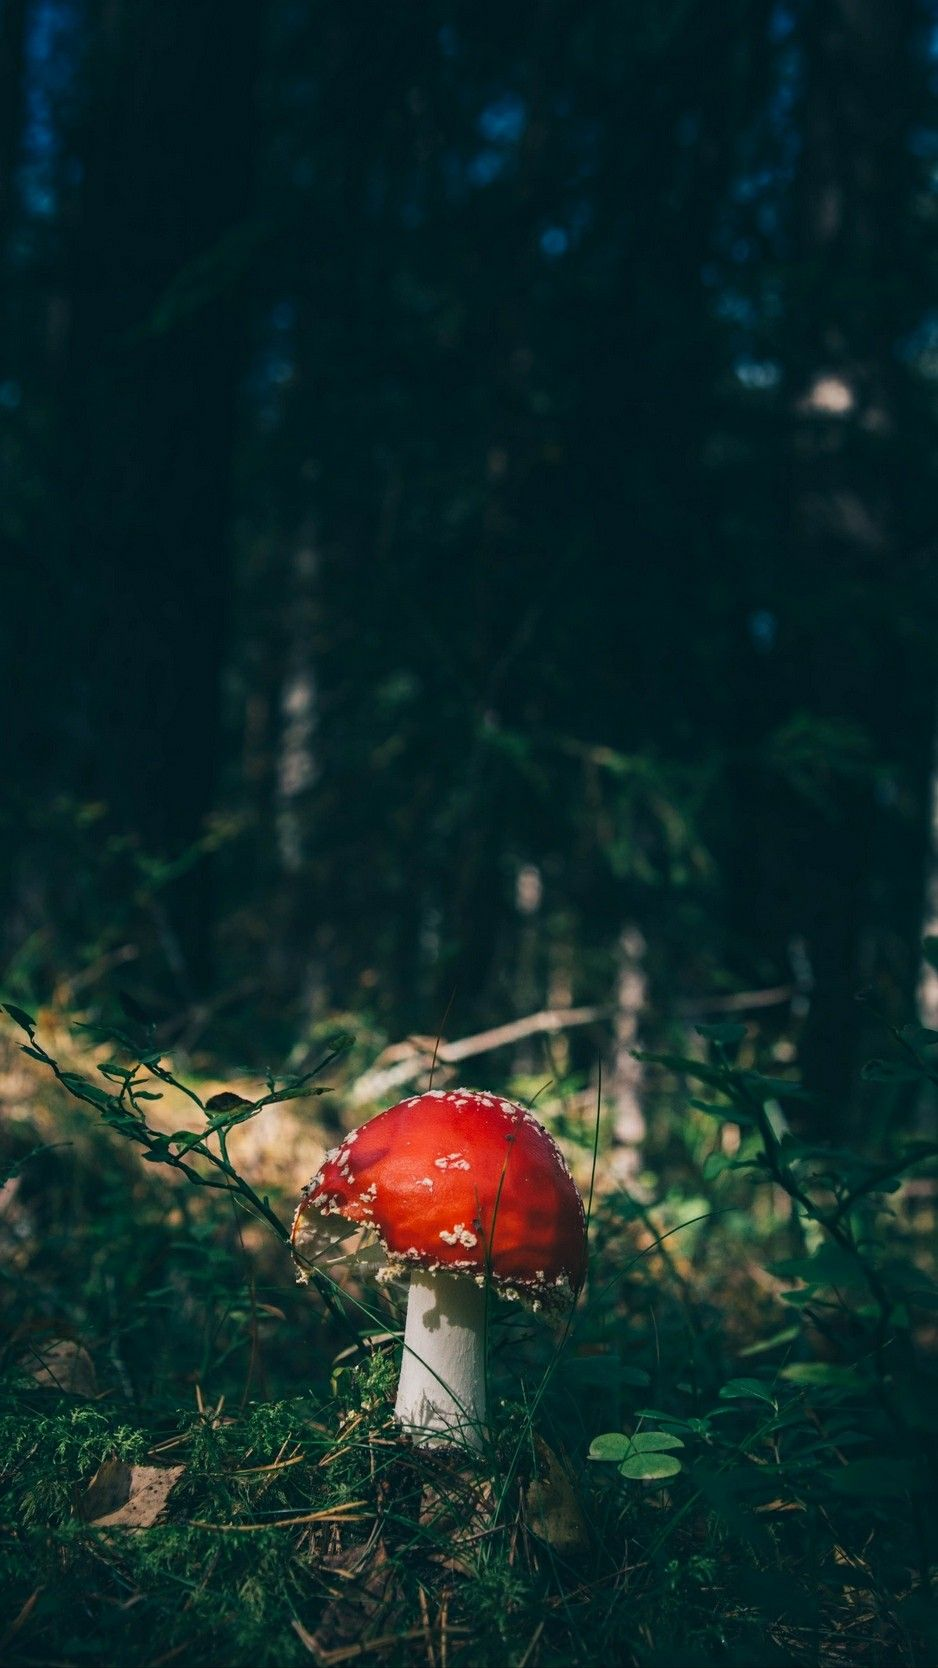 Pin by angel on Лес | Stuffed mushrooms, Types of forests